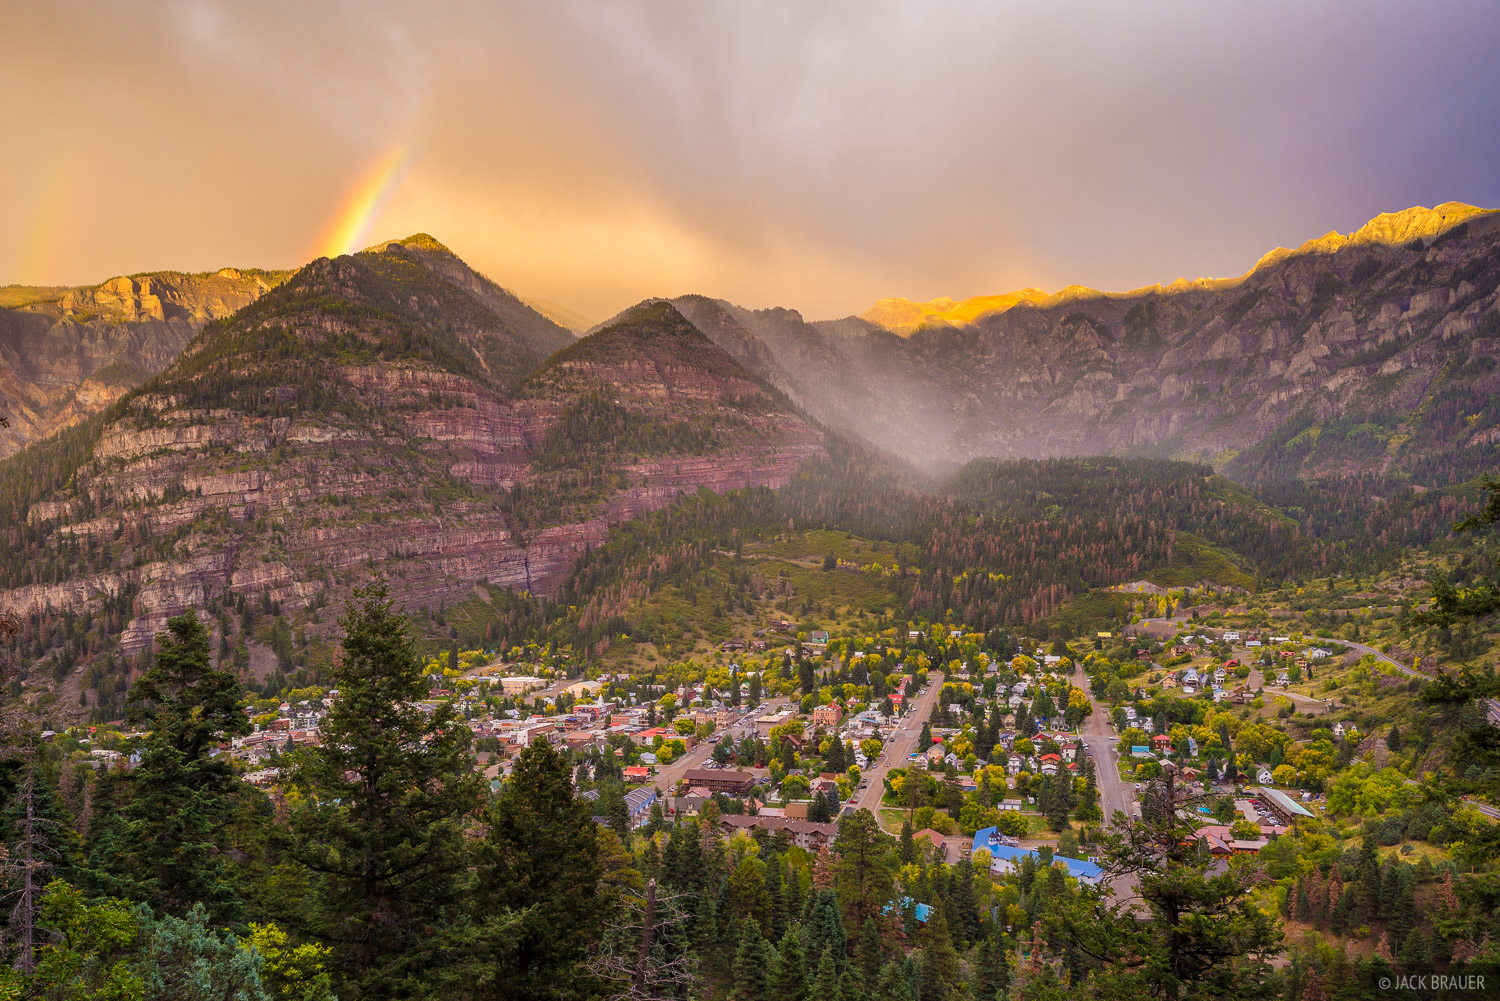 A sunset rainbow over the town of Ouray - San Juan Mountains, Colorado.